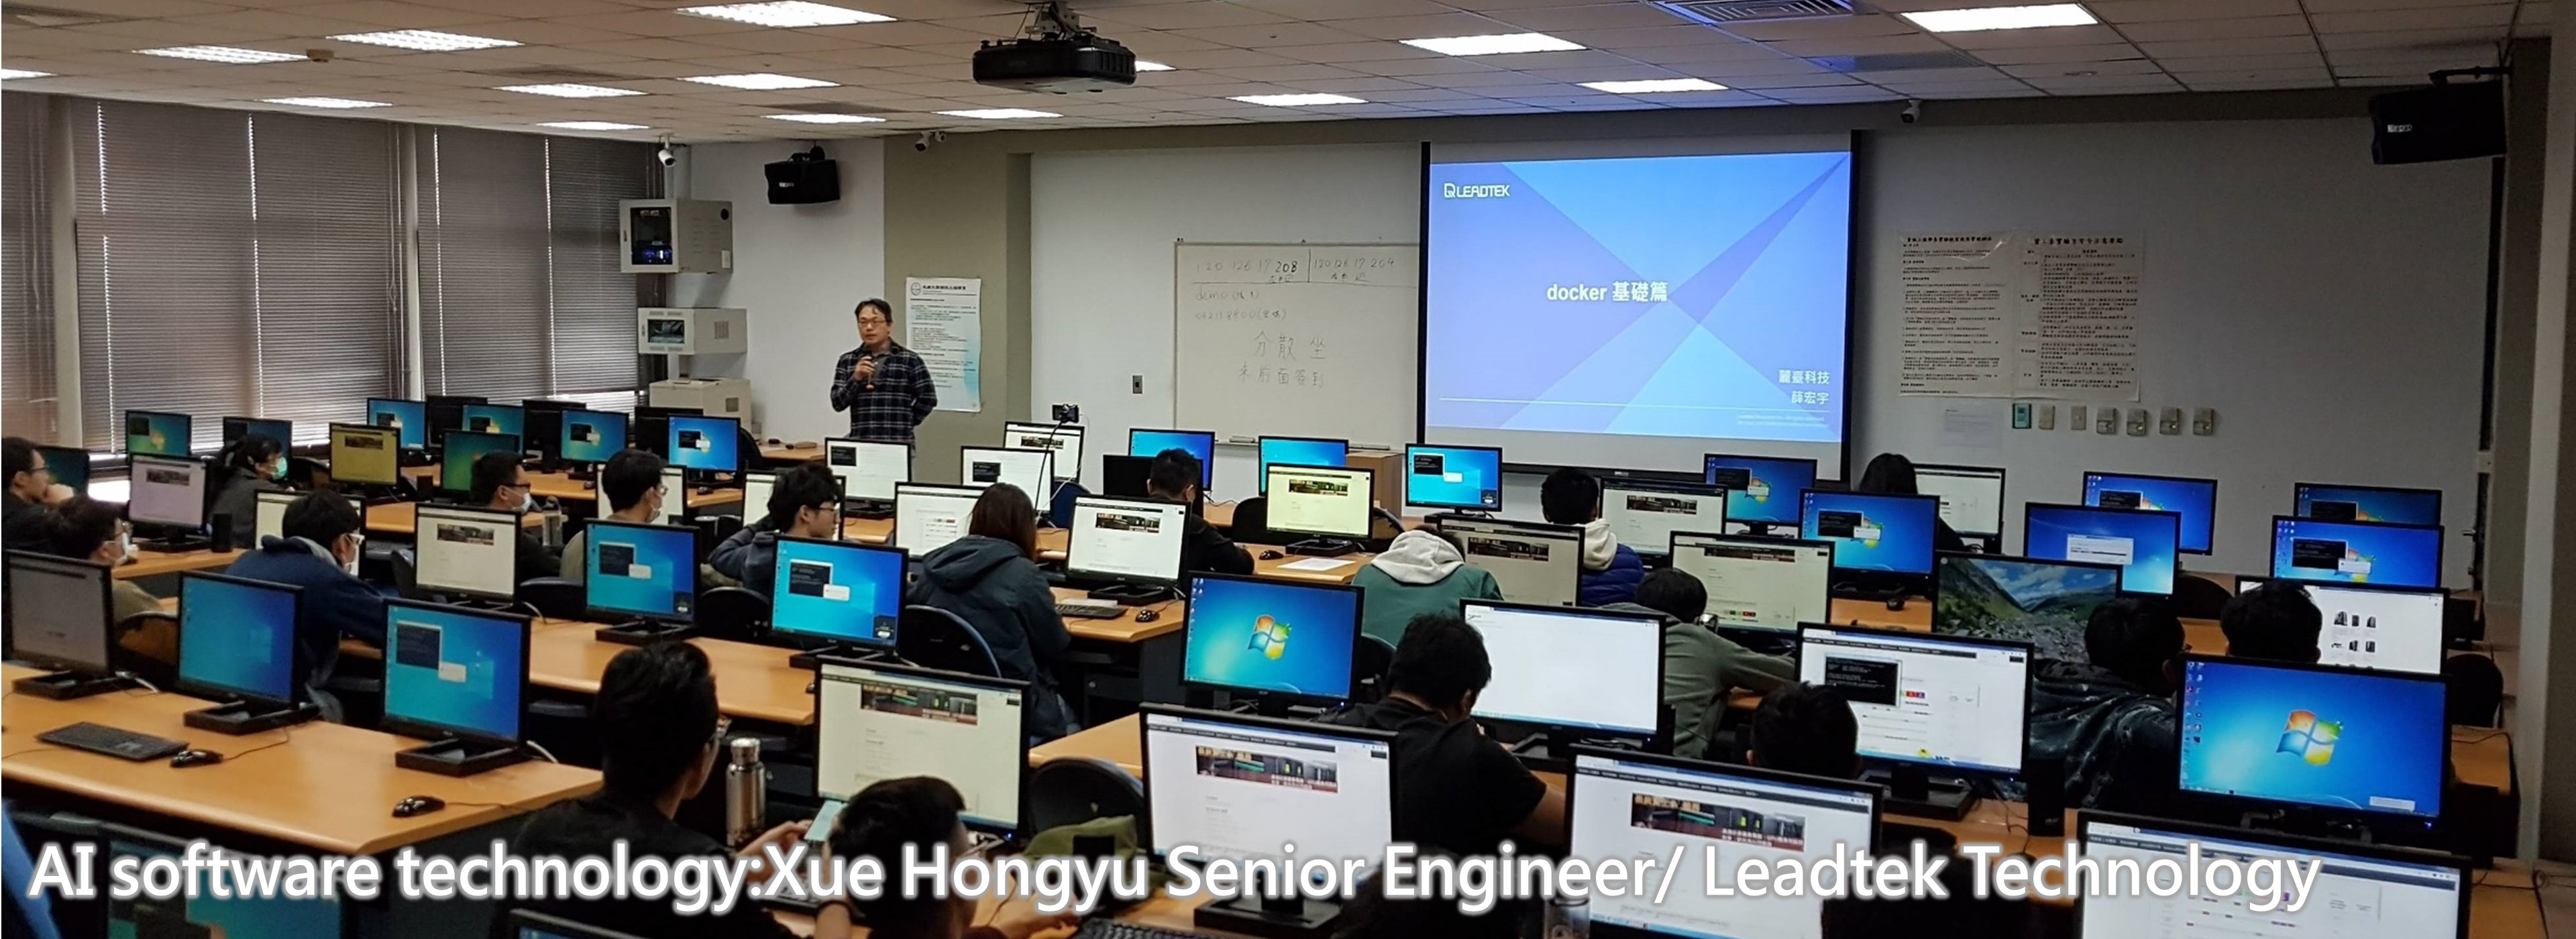 AI software technology:Xue Hongyu Senior Engineer/ Leadtek Technology